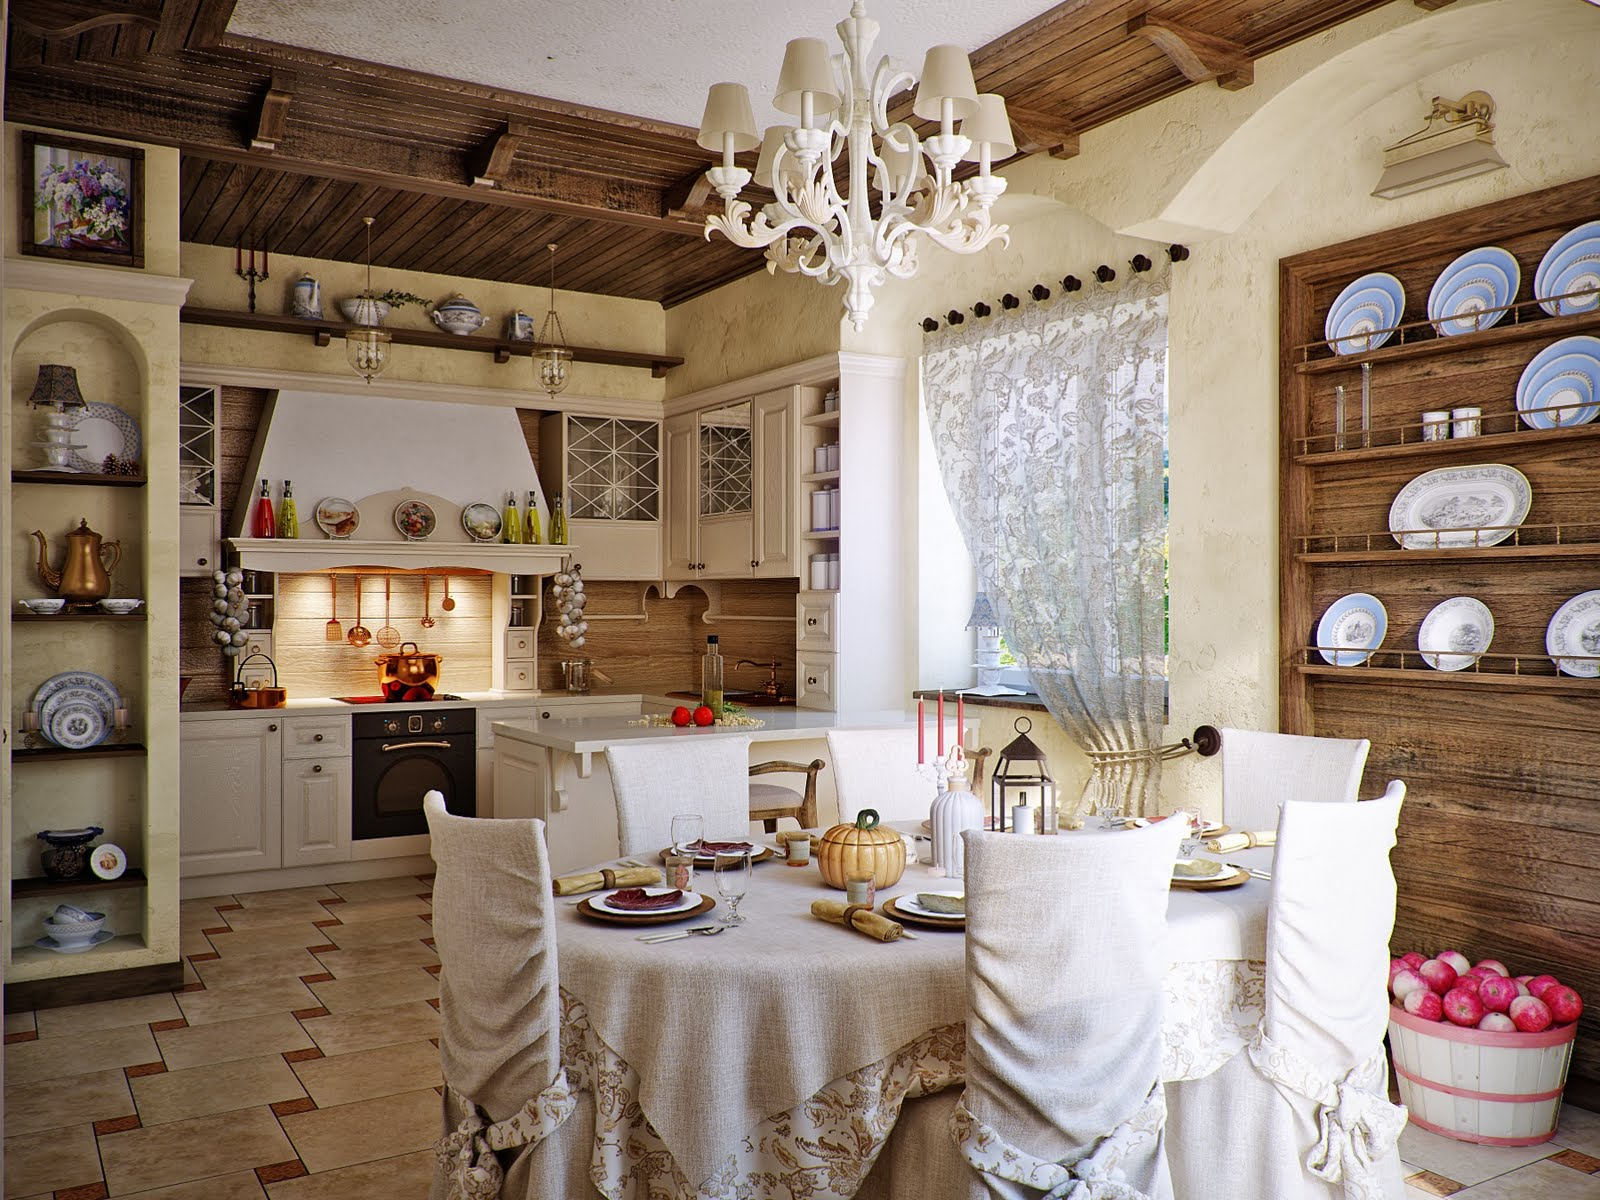 Attractive country kitchen designs ideas that inspire you for Country interior designs